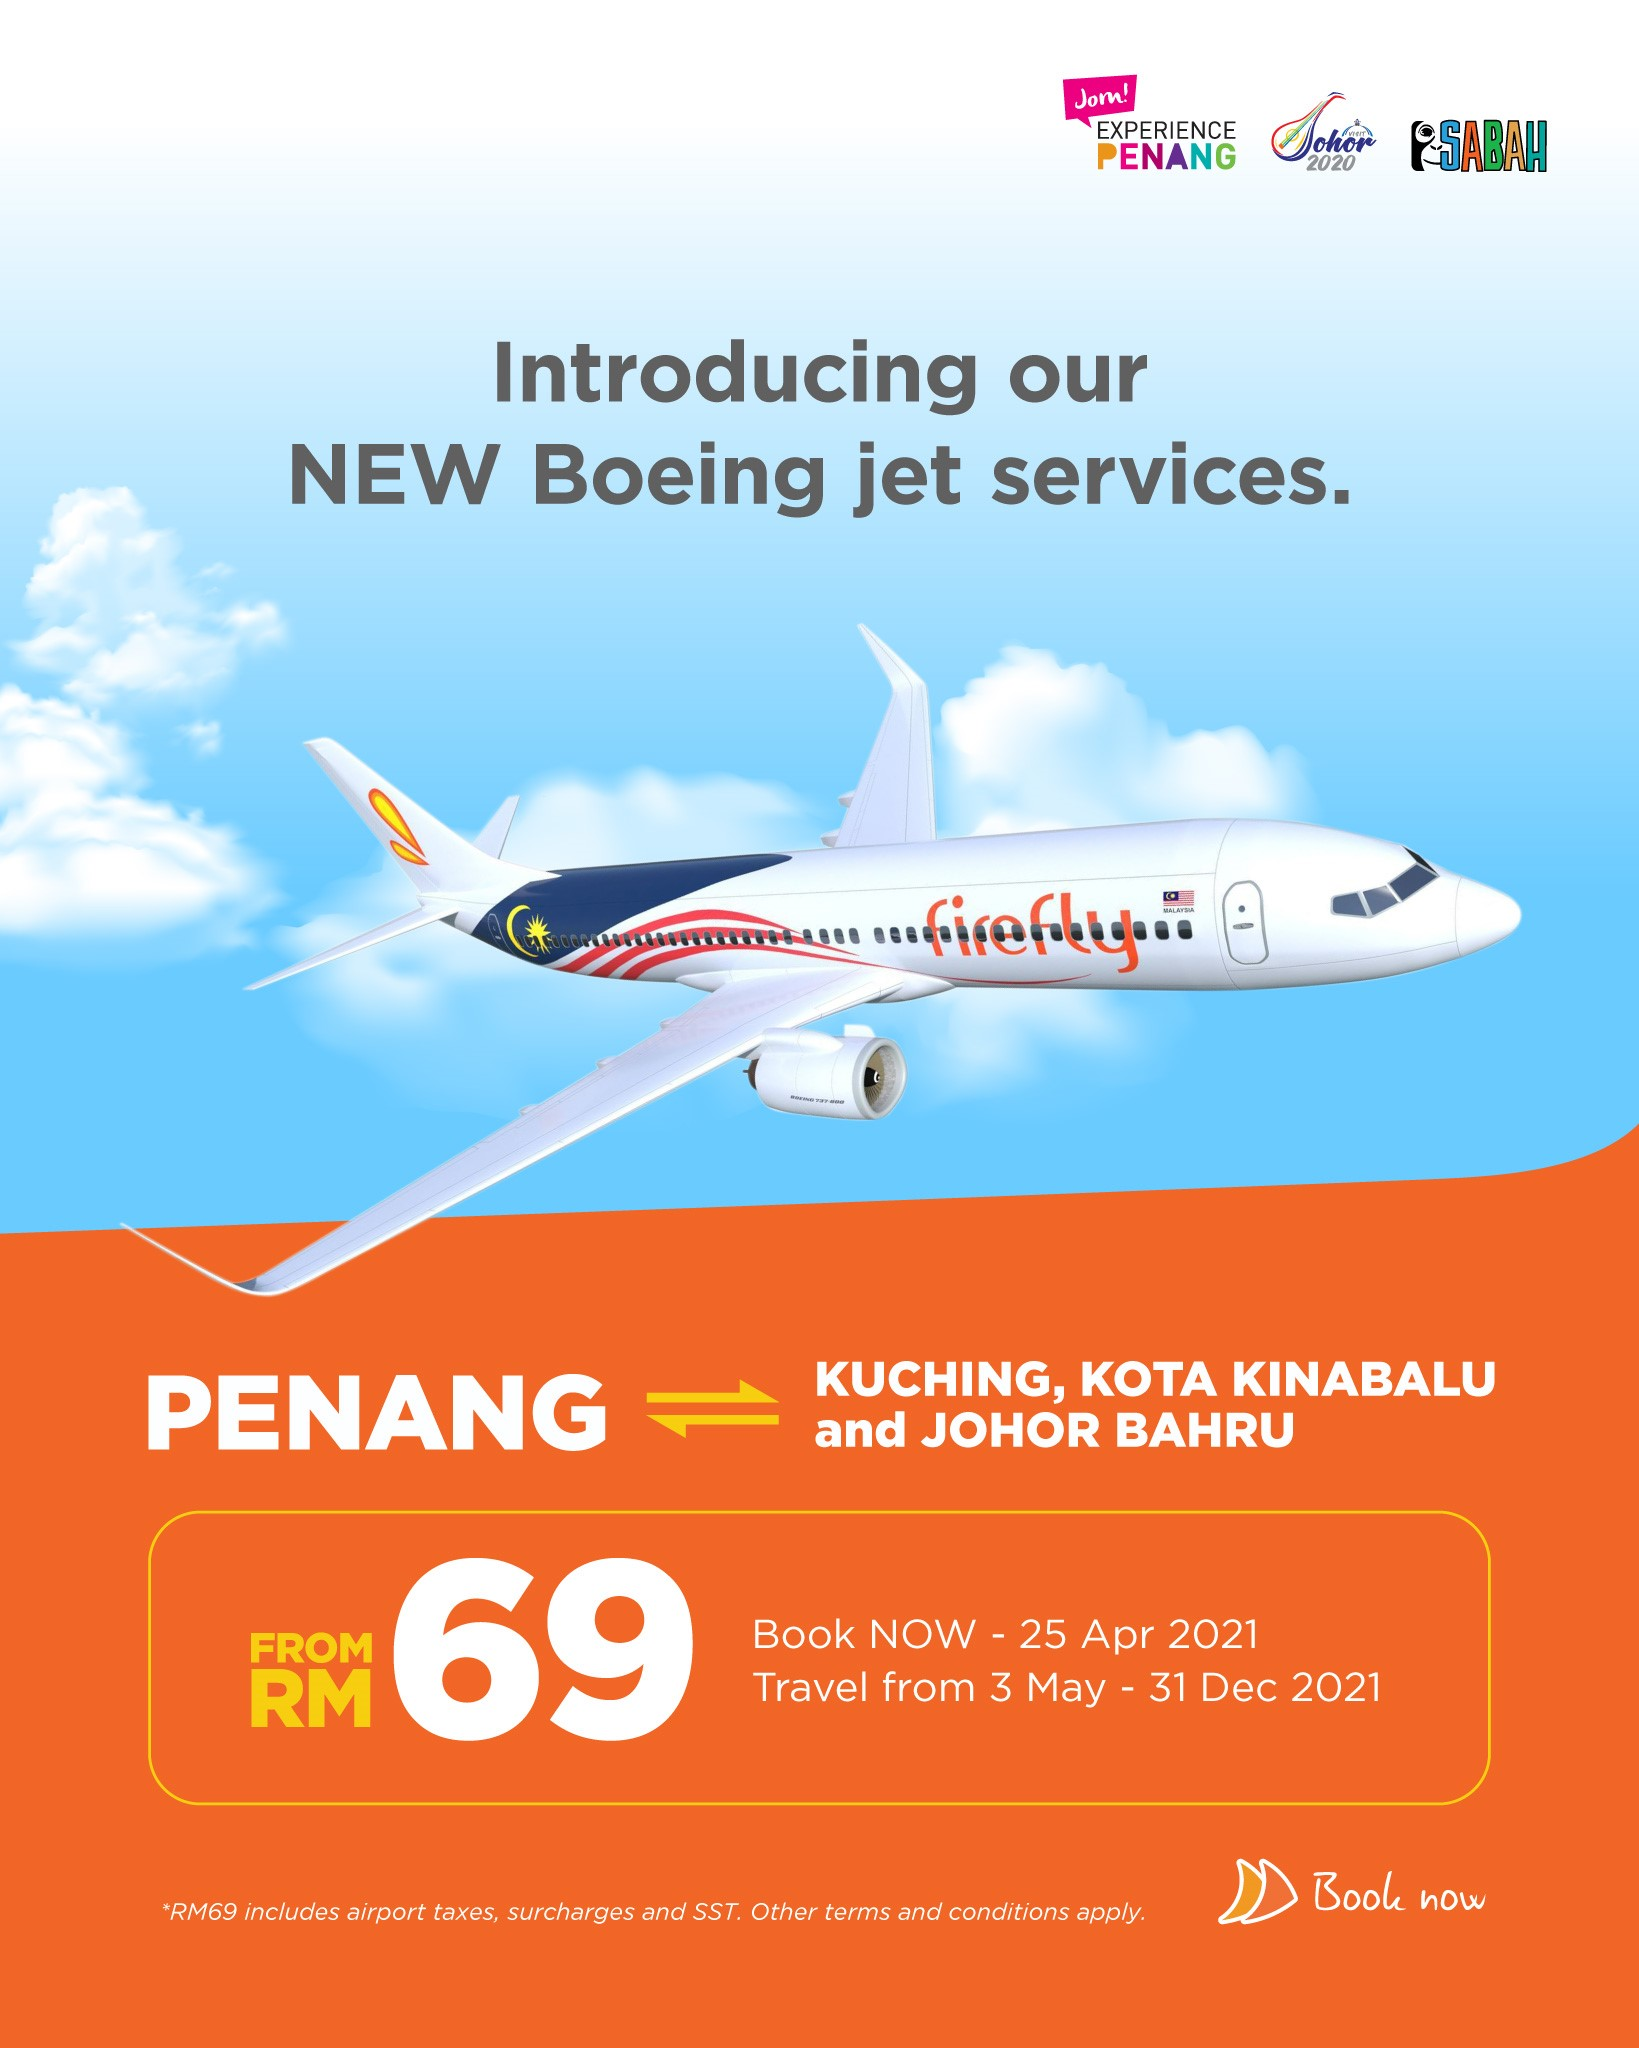 Firefly - Penang departure from RM69 FIREFLYZ PROMO